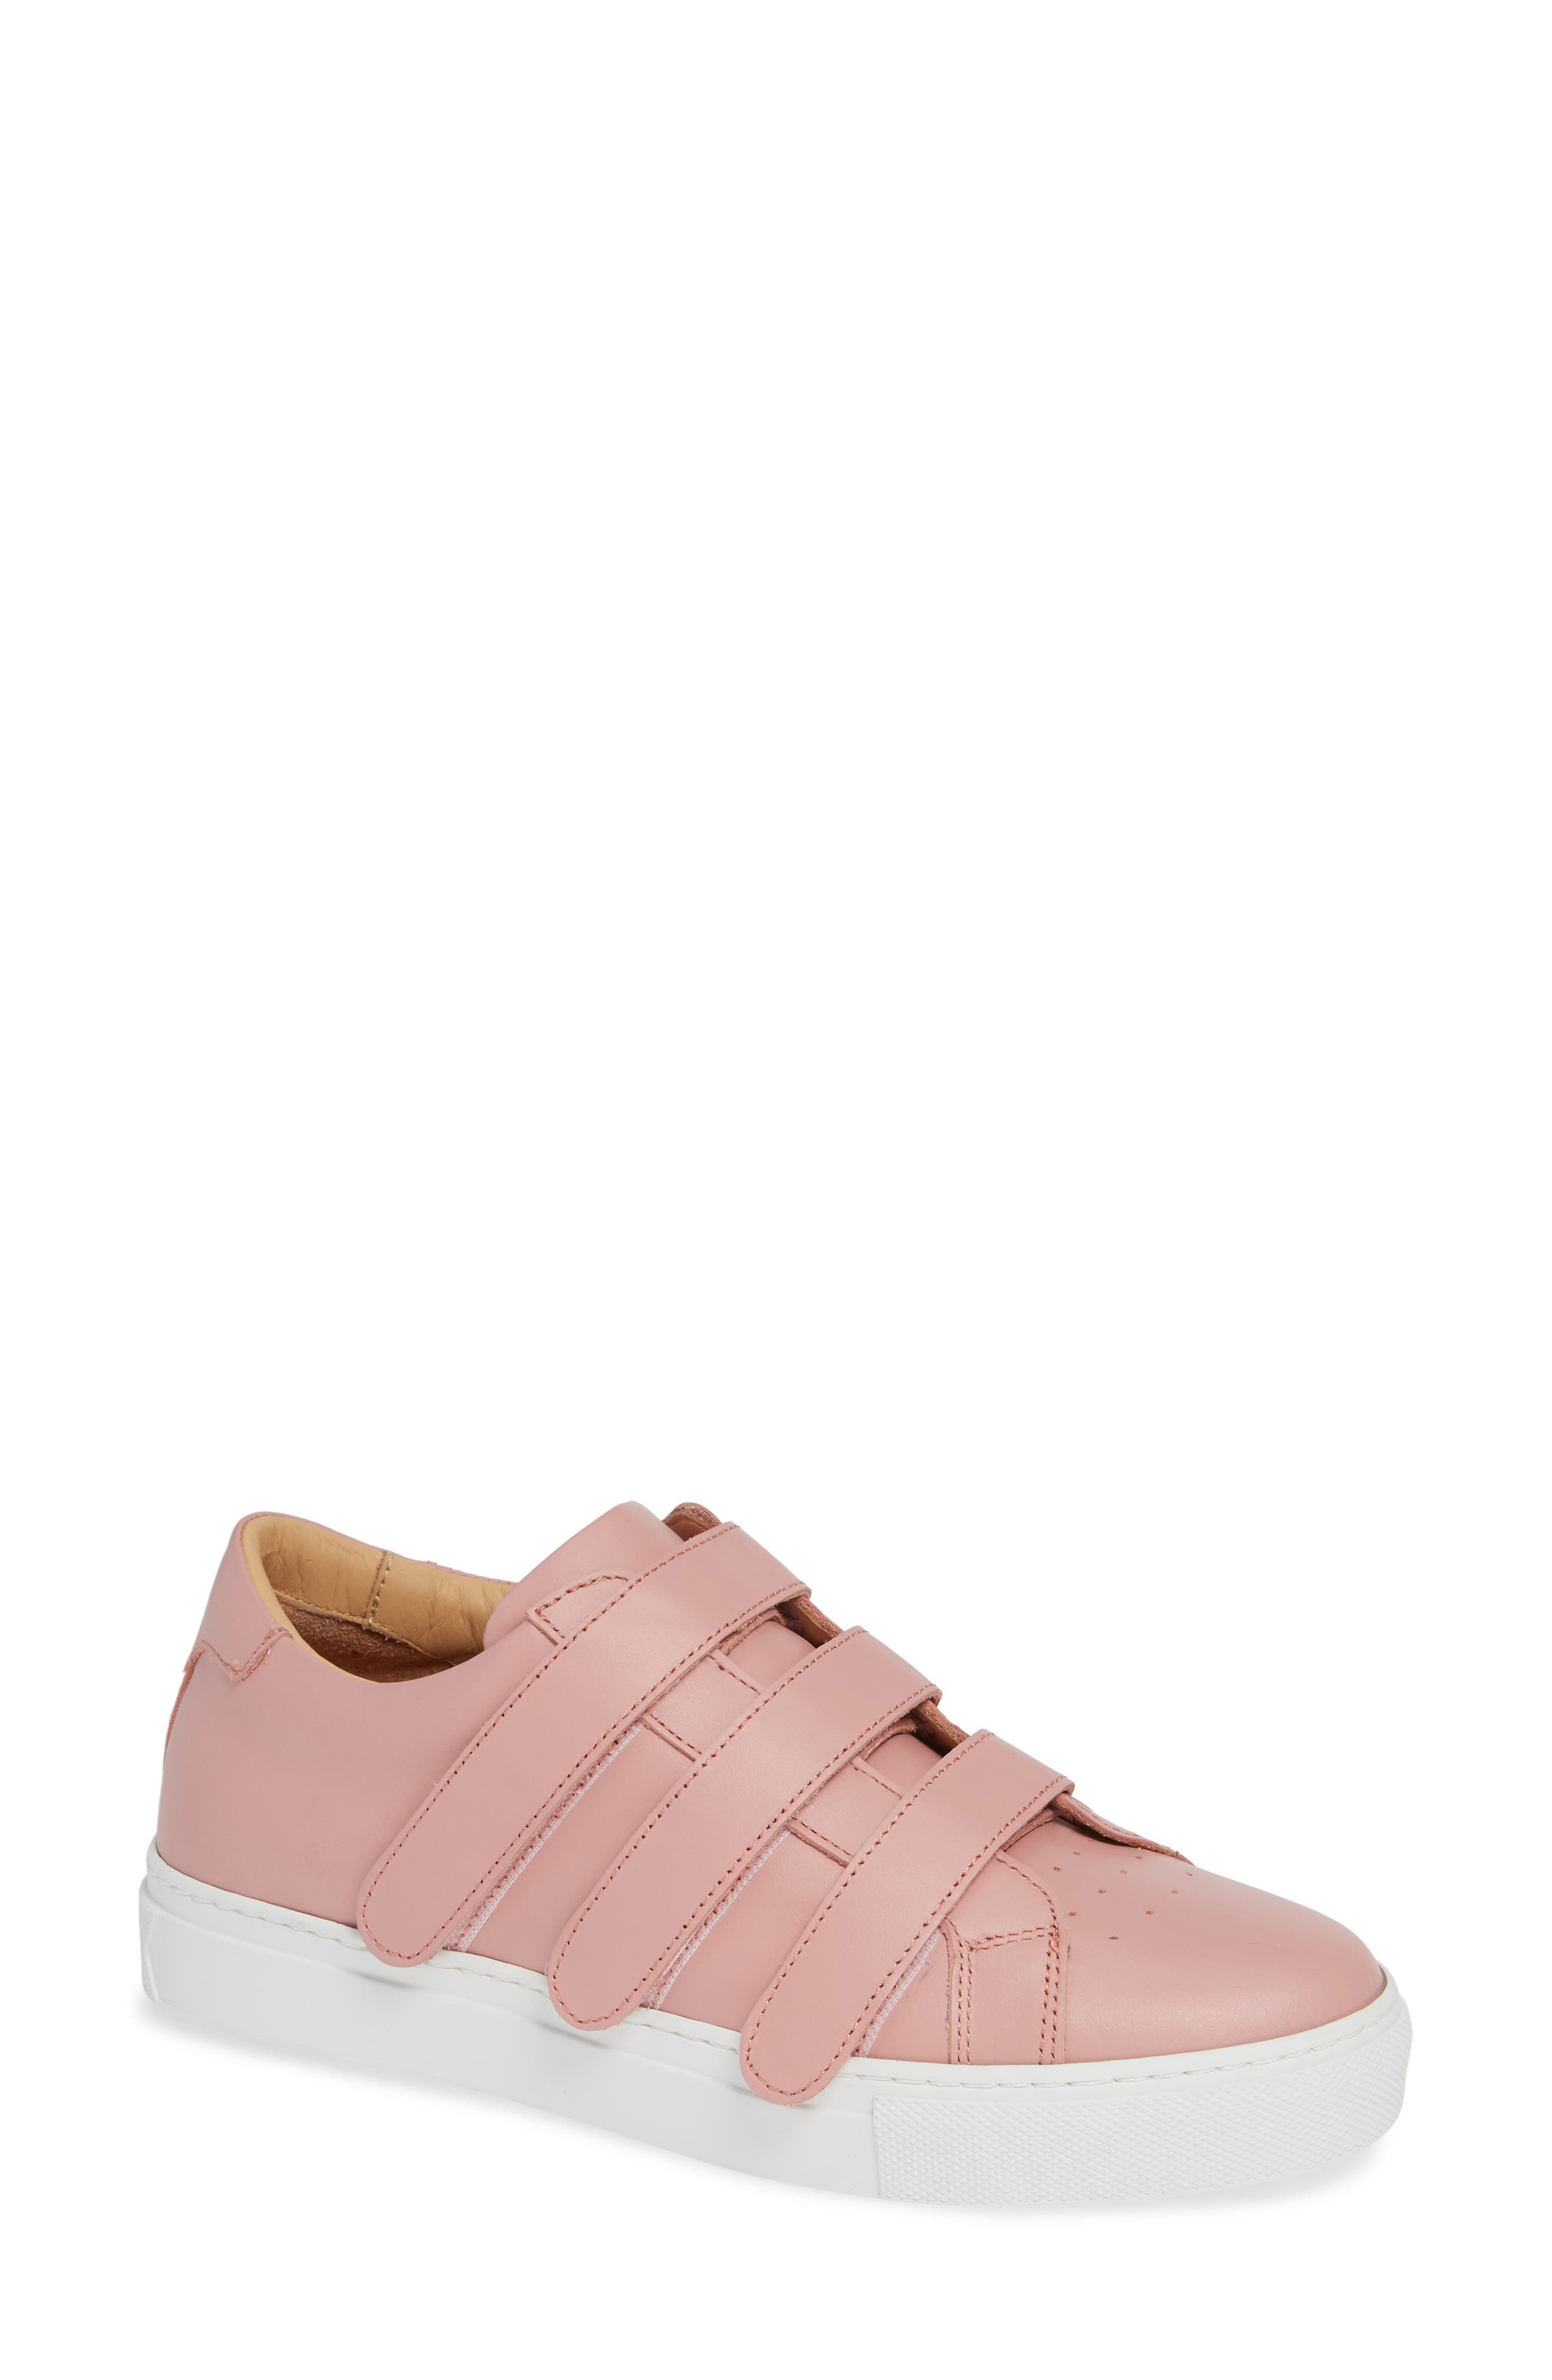 Nick Wooster x GREATS Wooster Royale Sneaker,                             Main thumbnail 1, color,                             651